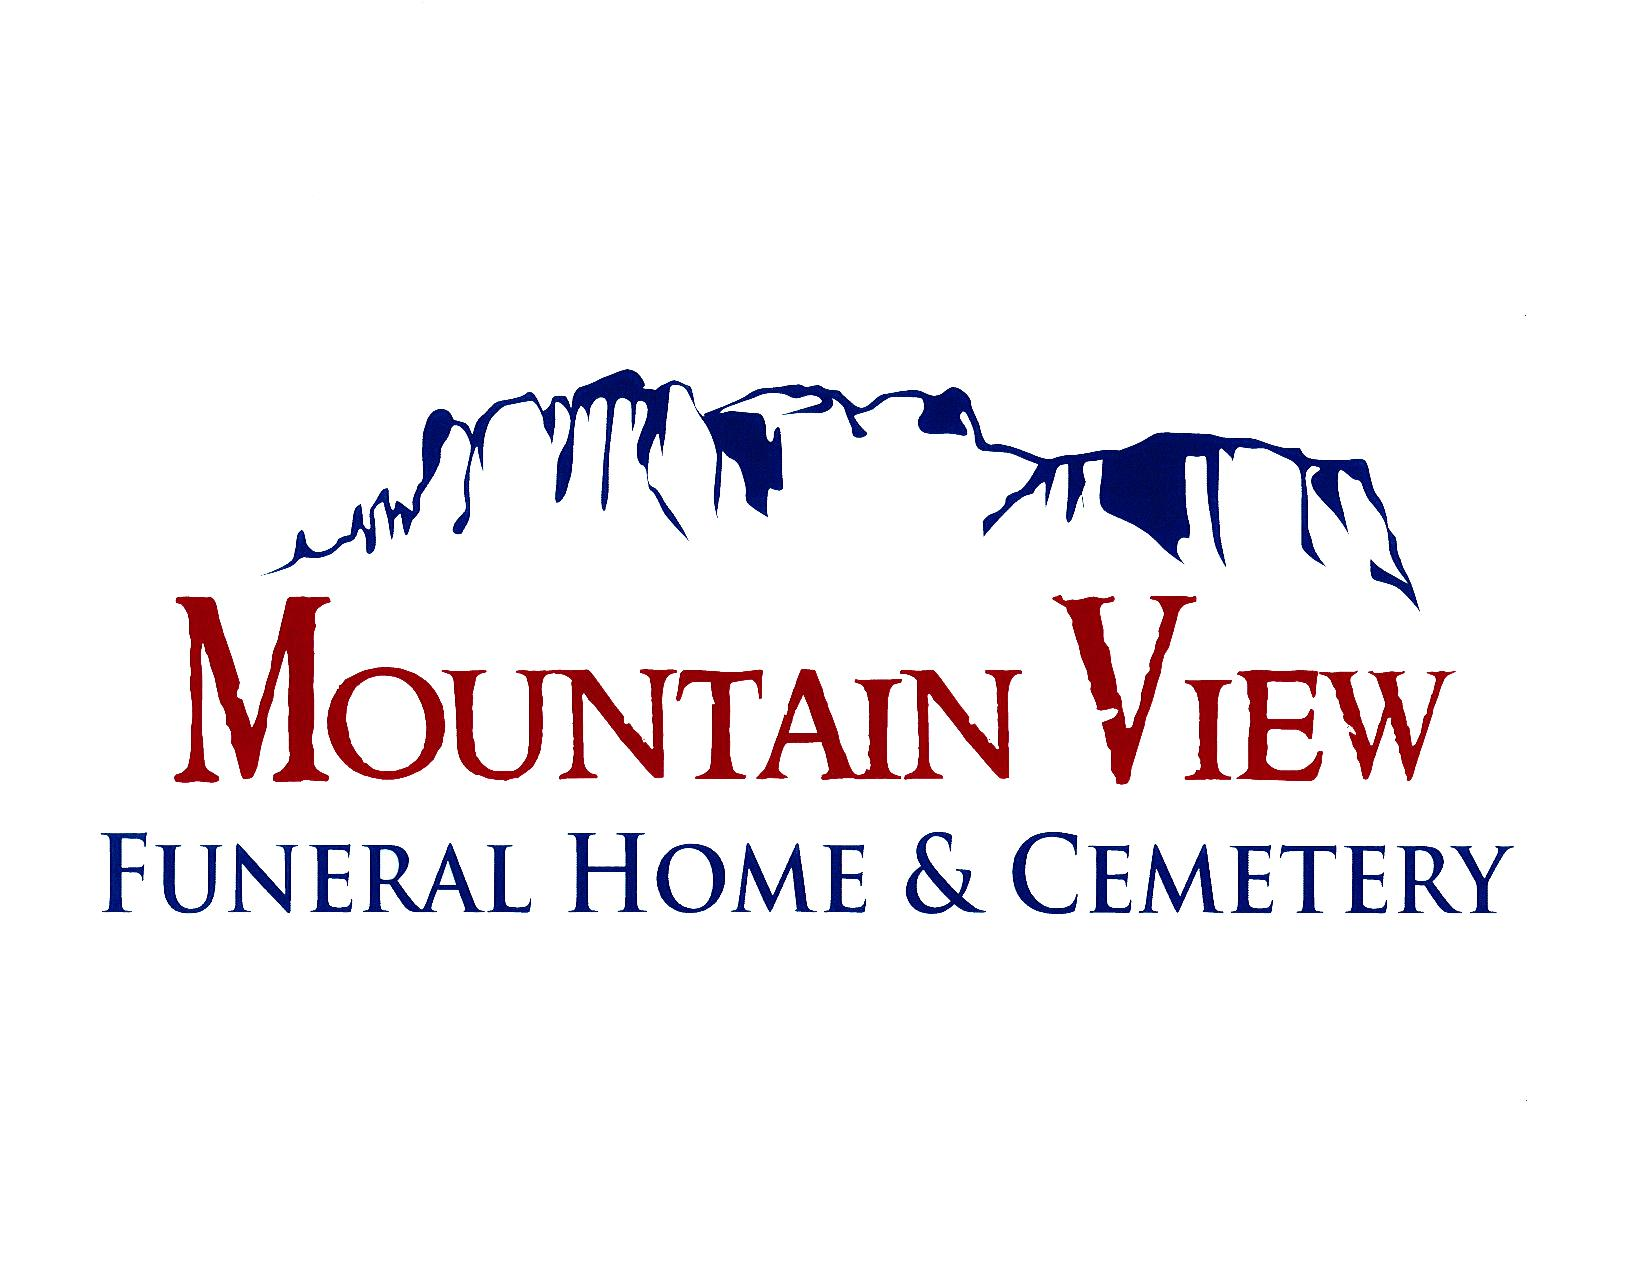 Mountain View Funeral Home